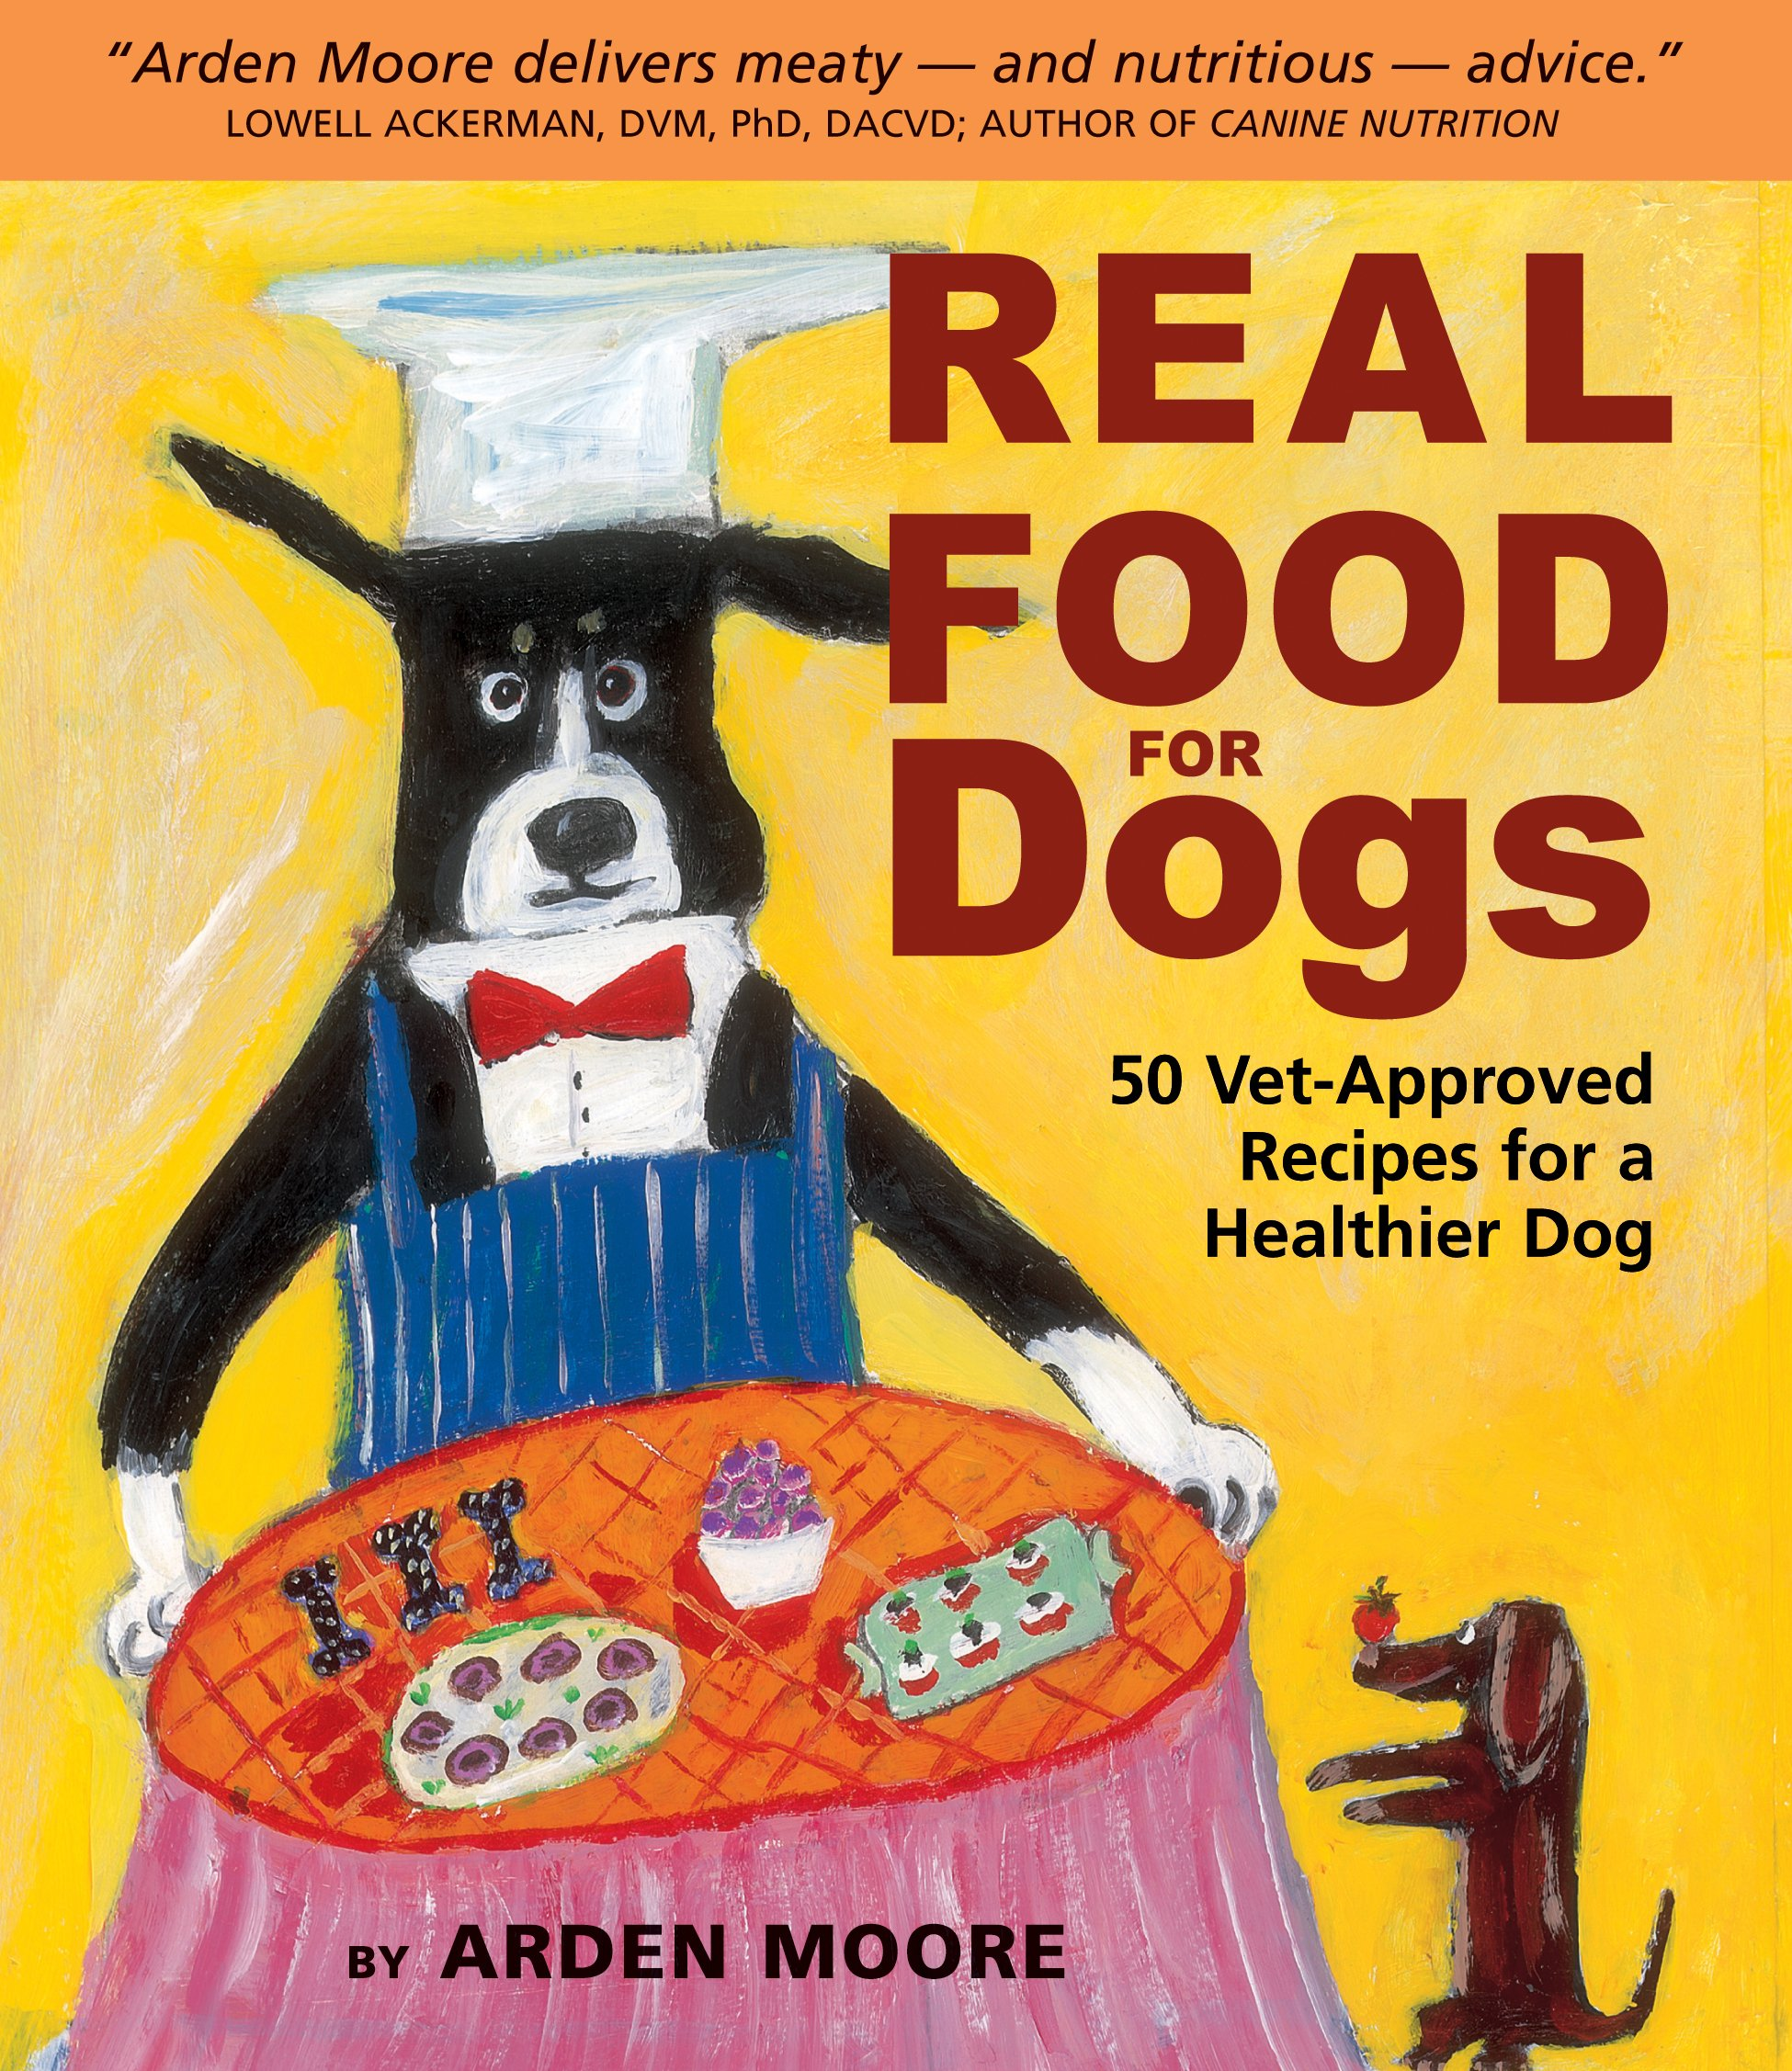 Real food for dogs 50 vet approved recipes for a healthier dog real food for dogs 50 vet approved recipes for a healthier dog arden moore anne davis 9781580174244 amazon books forumfinder Image collections